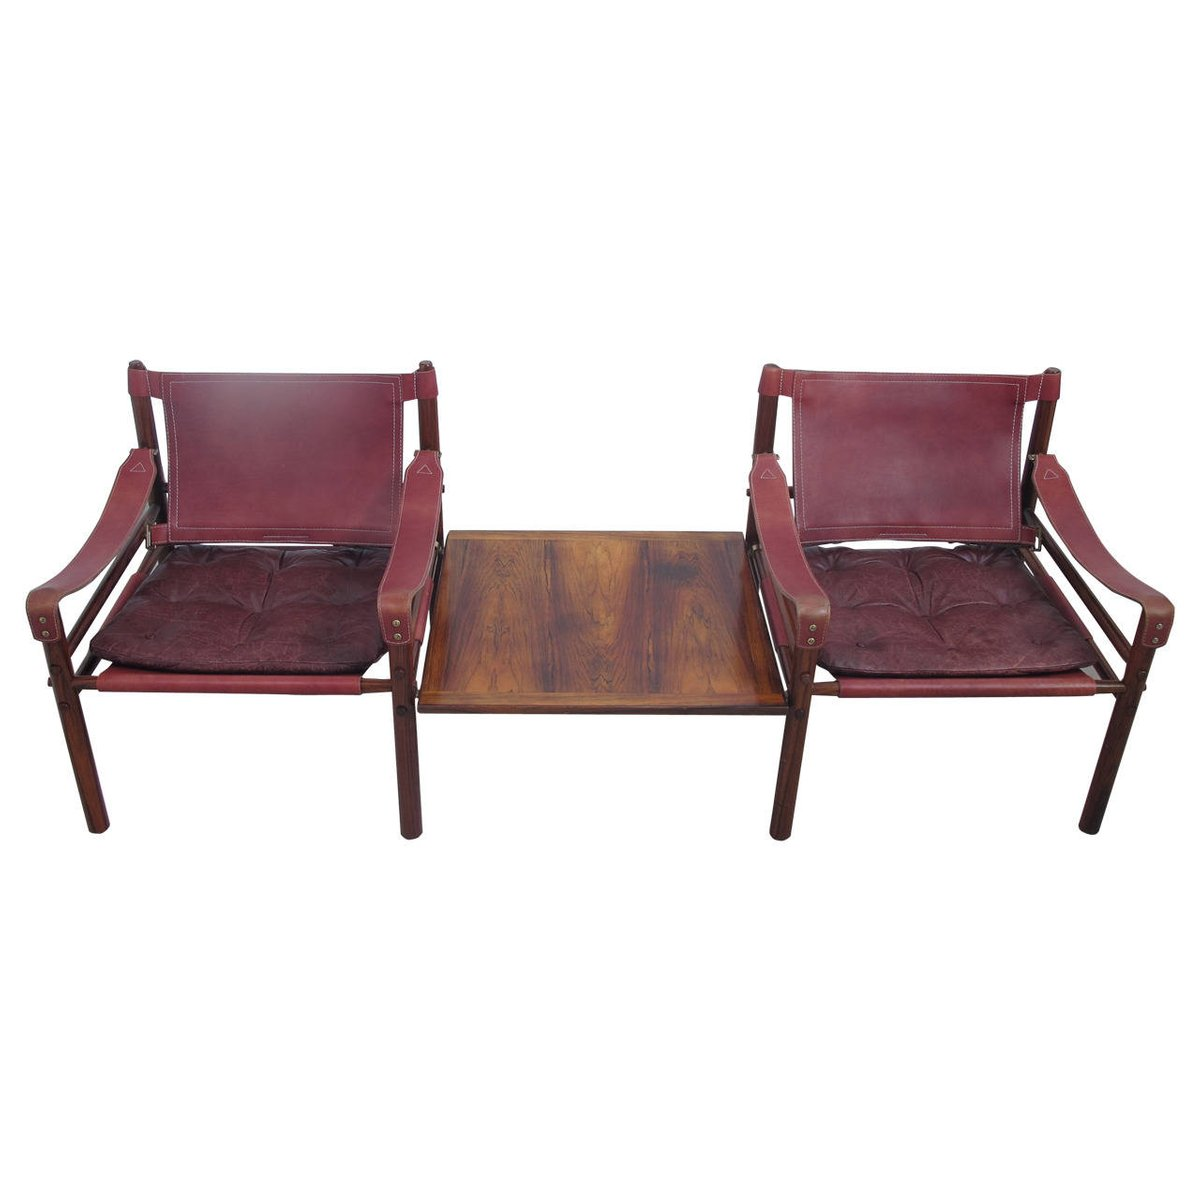 Vintage Swedish Rosewood And Leather Sirocco Safari Chairs With Side Table  By Arne Norell